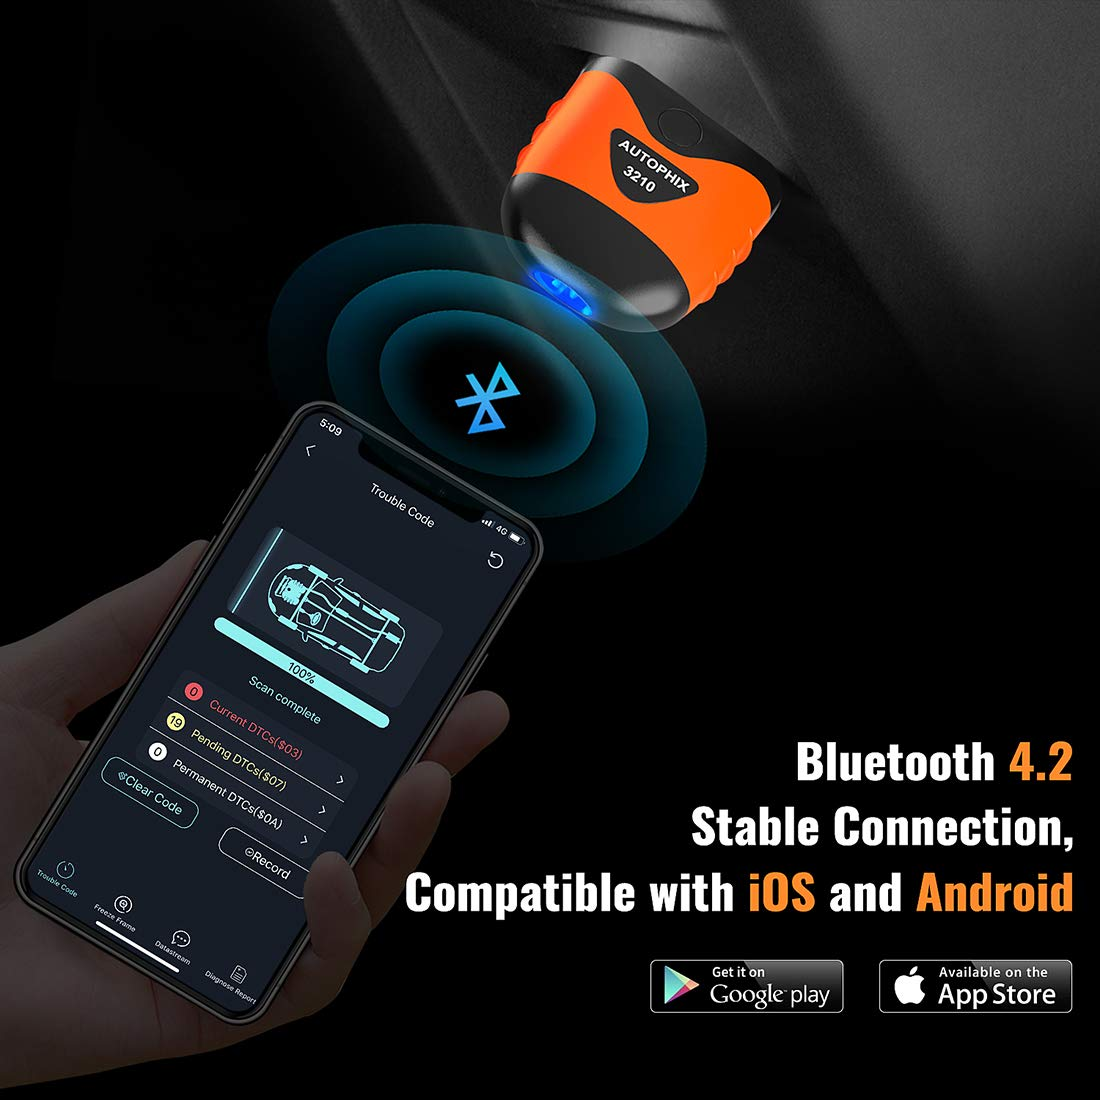 AUTOPHIX 3210 Bluetooth OBD2 Enhanced Car Diagnostic Scanner for iPhone, iPad & Android, Fault Code Reader Plus Battery Tester Exclusive App for Quality-Newest Generation by AUTOPHIX (Image #2)